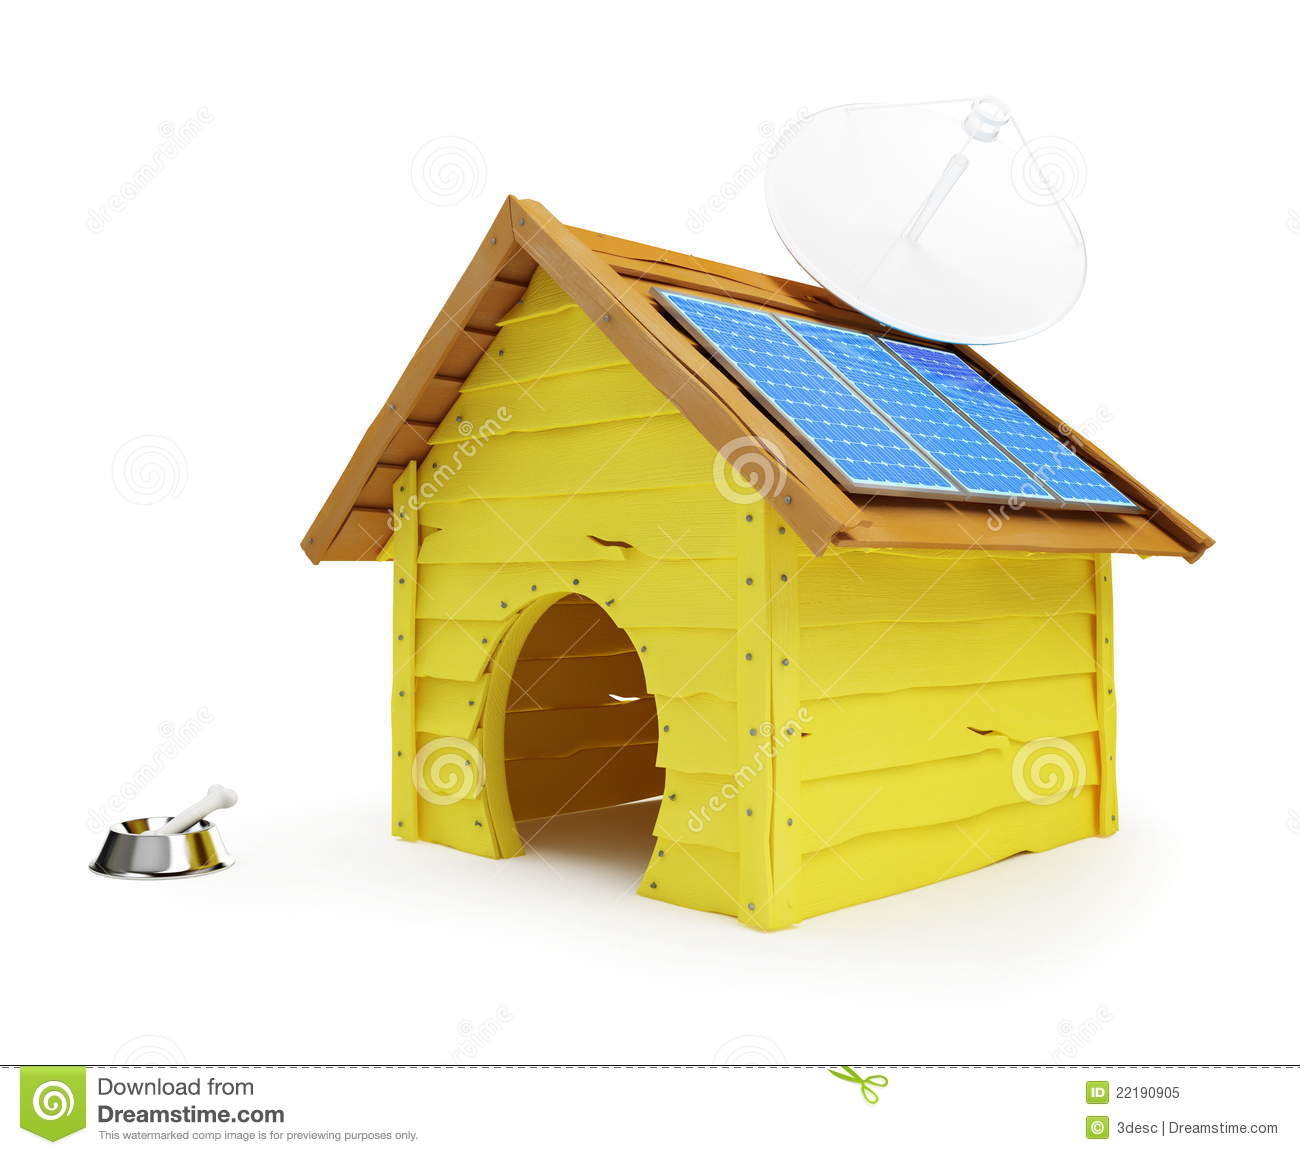 Dog House With Solar Panels And Antenna Royalty Free Stock